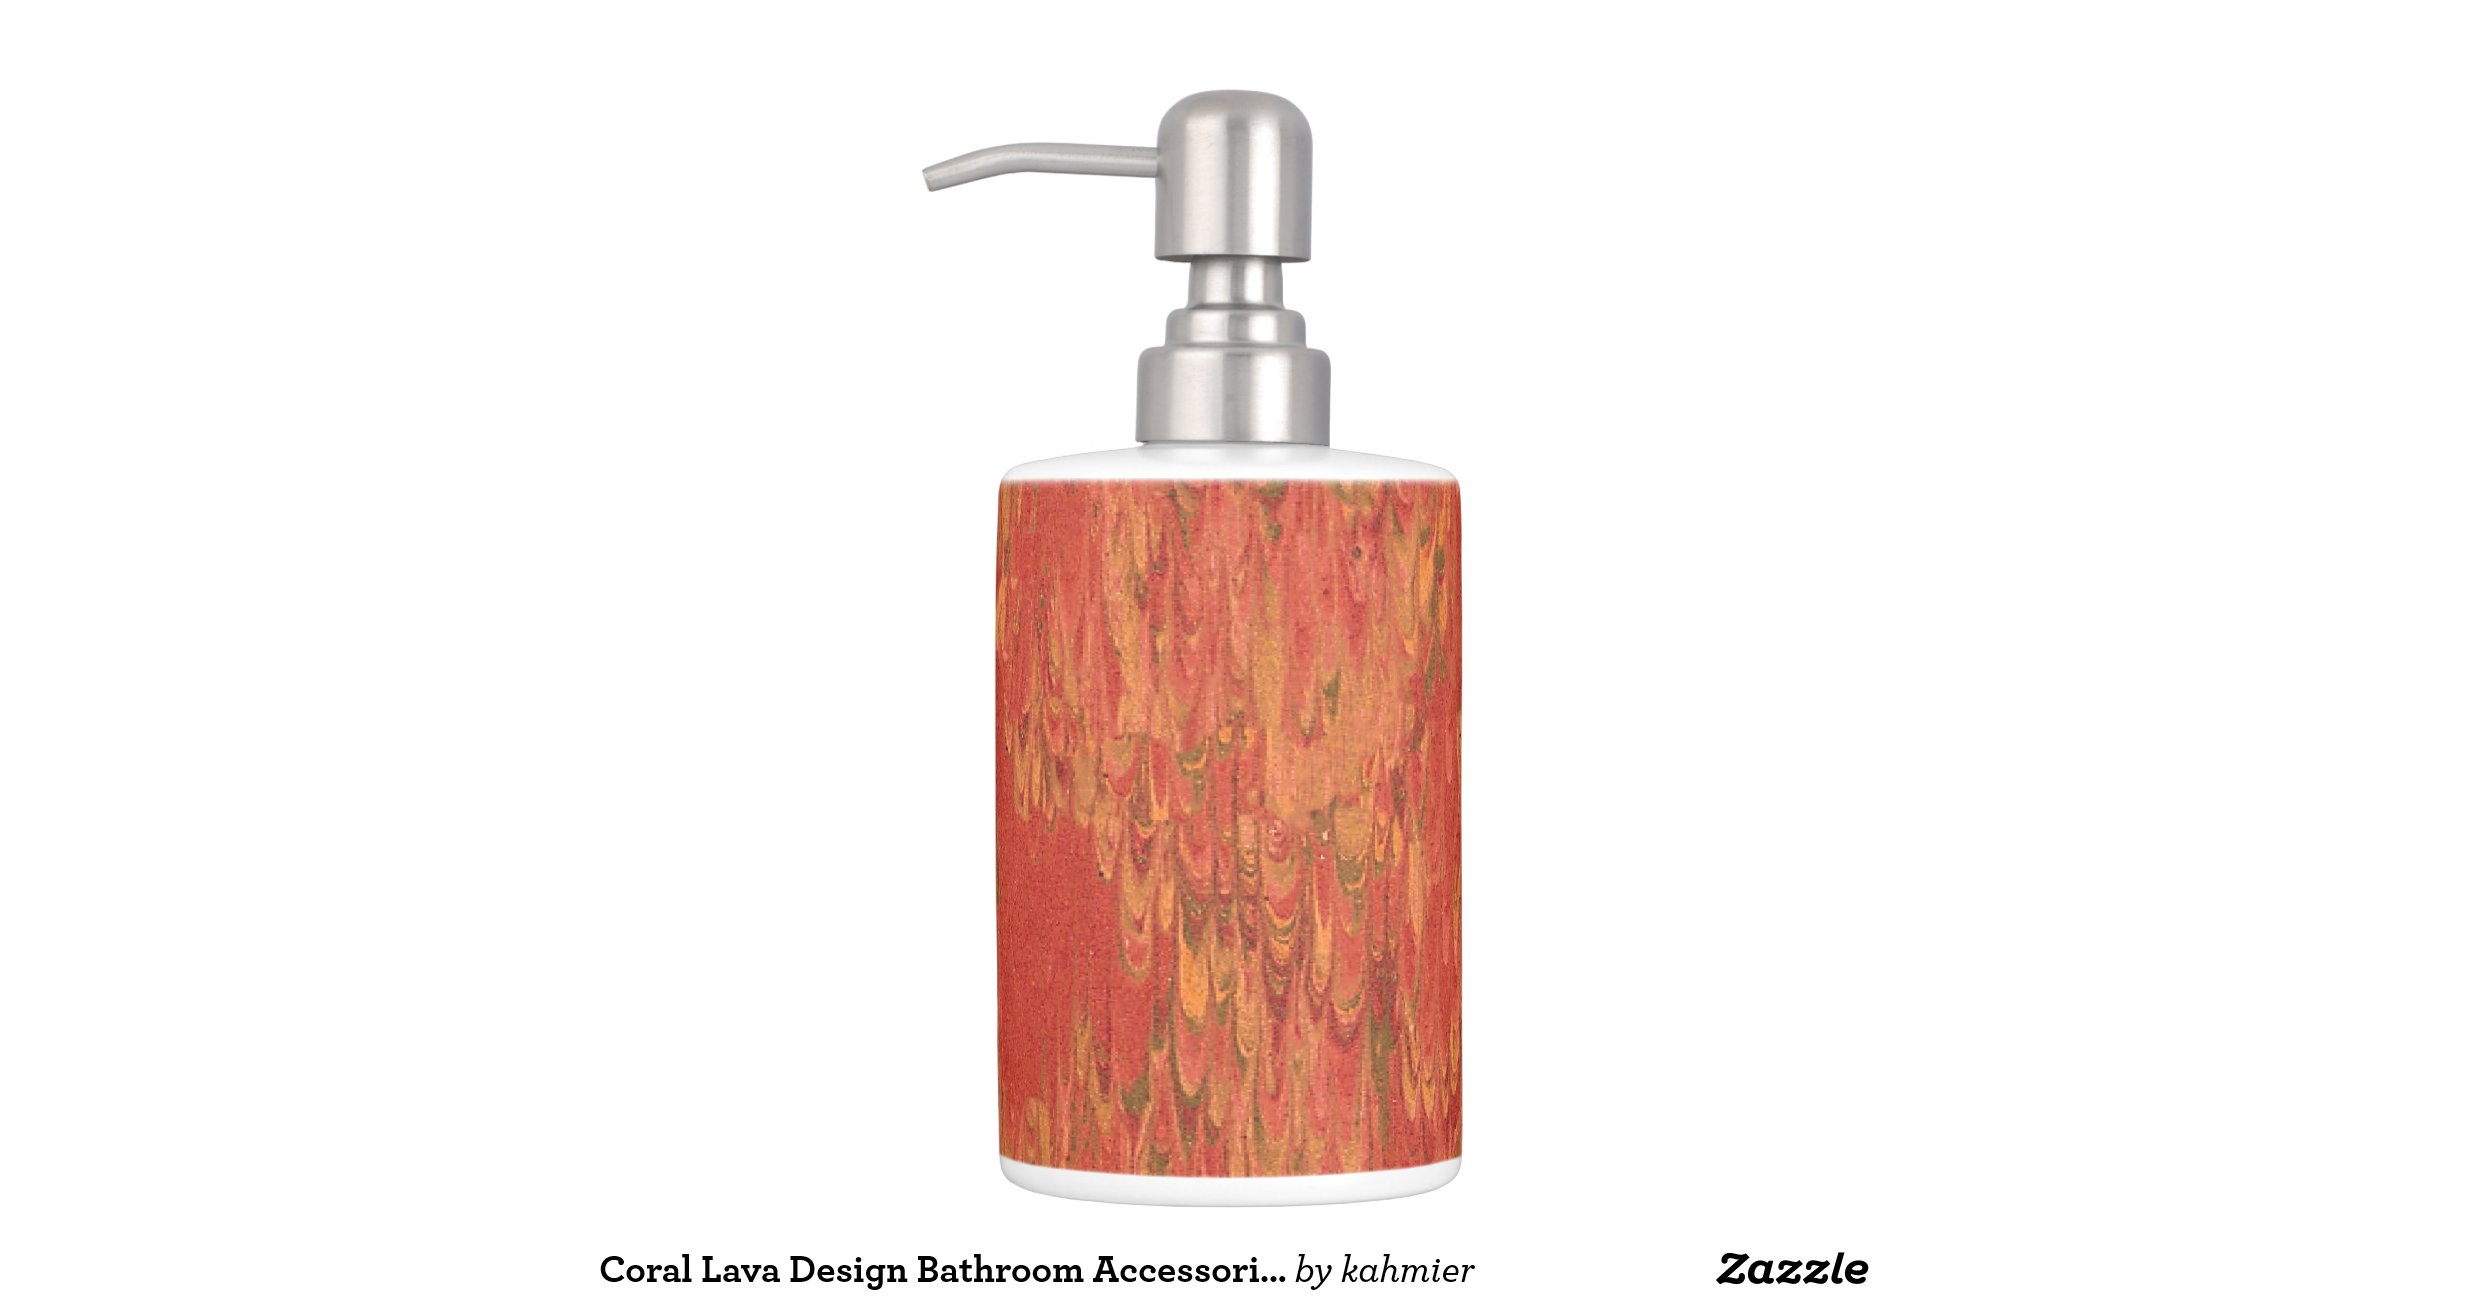 Coral lava design bathroom accessories toothbrush holders for Bathroom decor coral